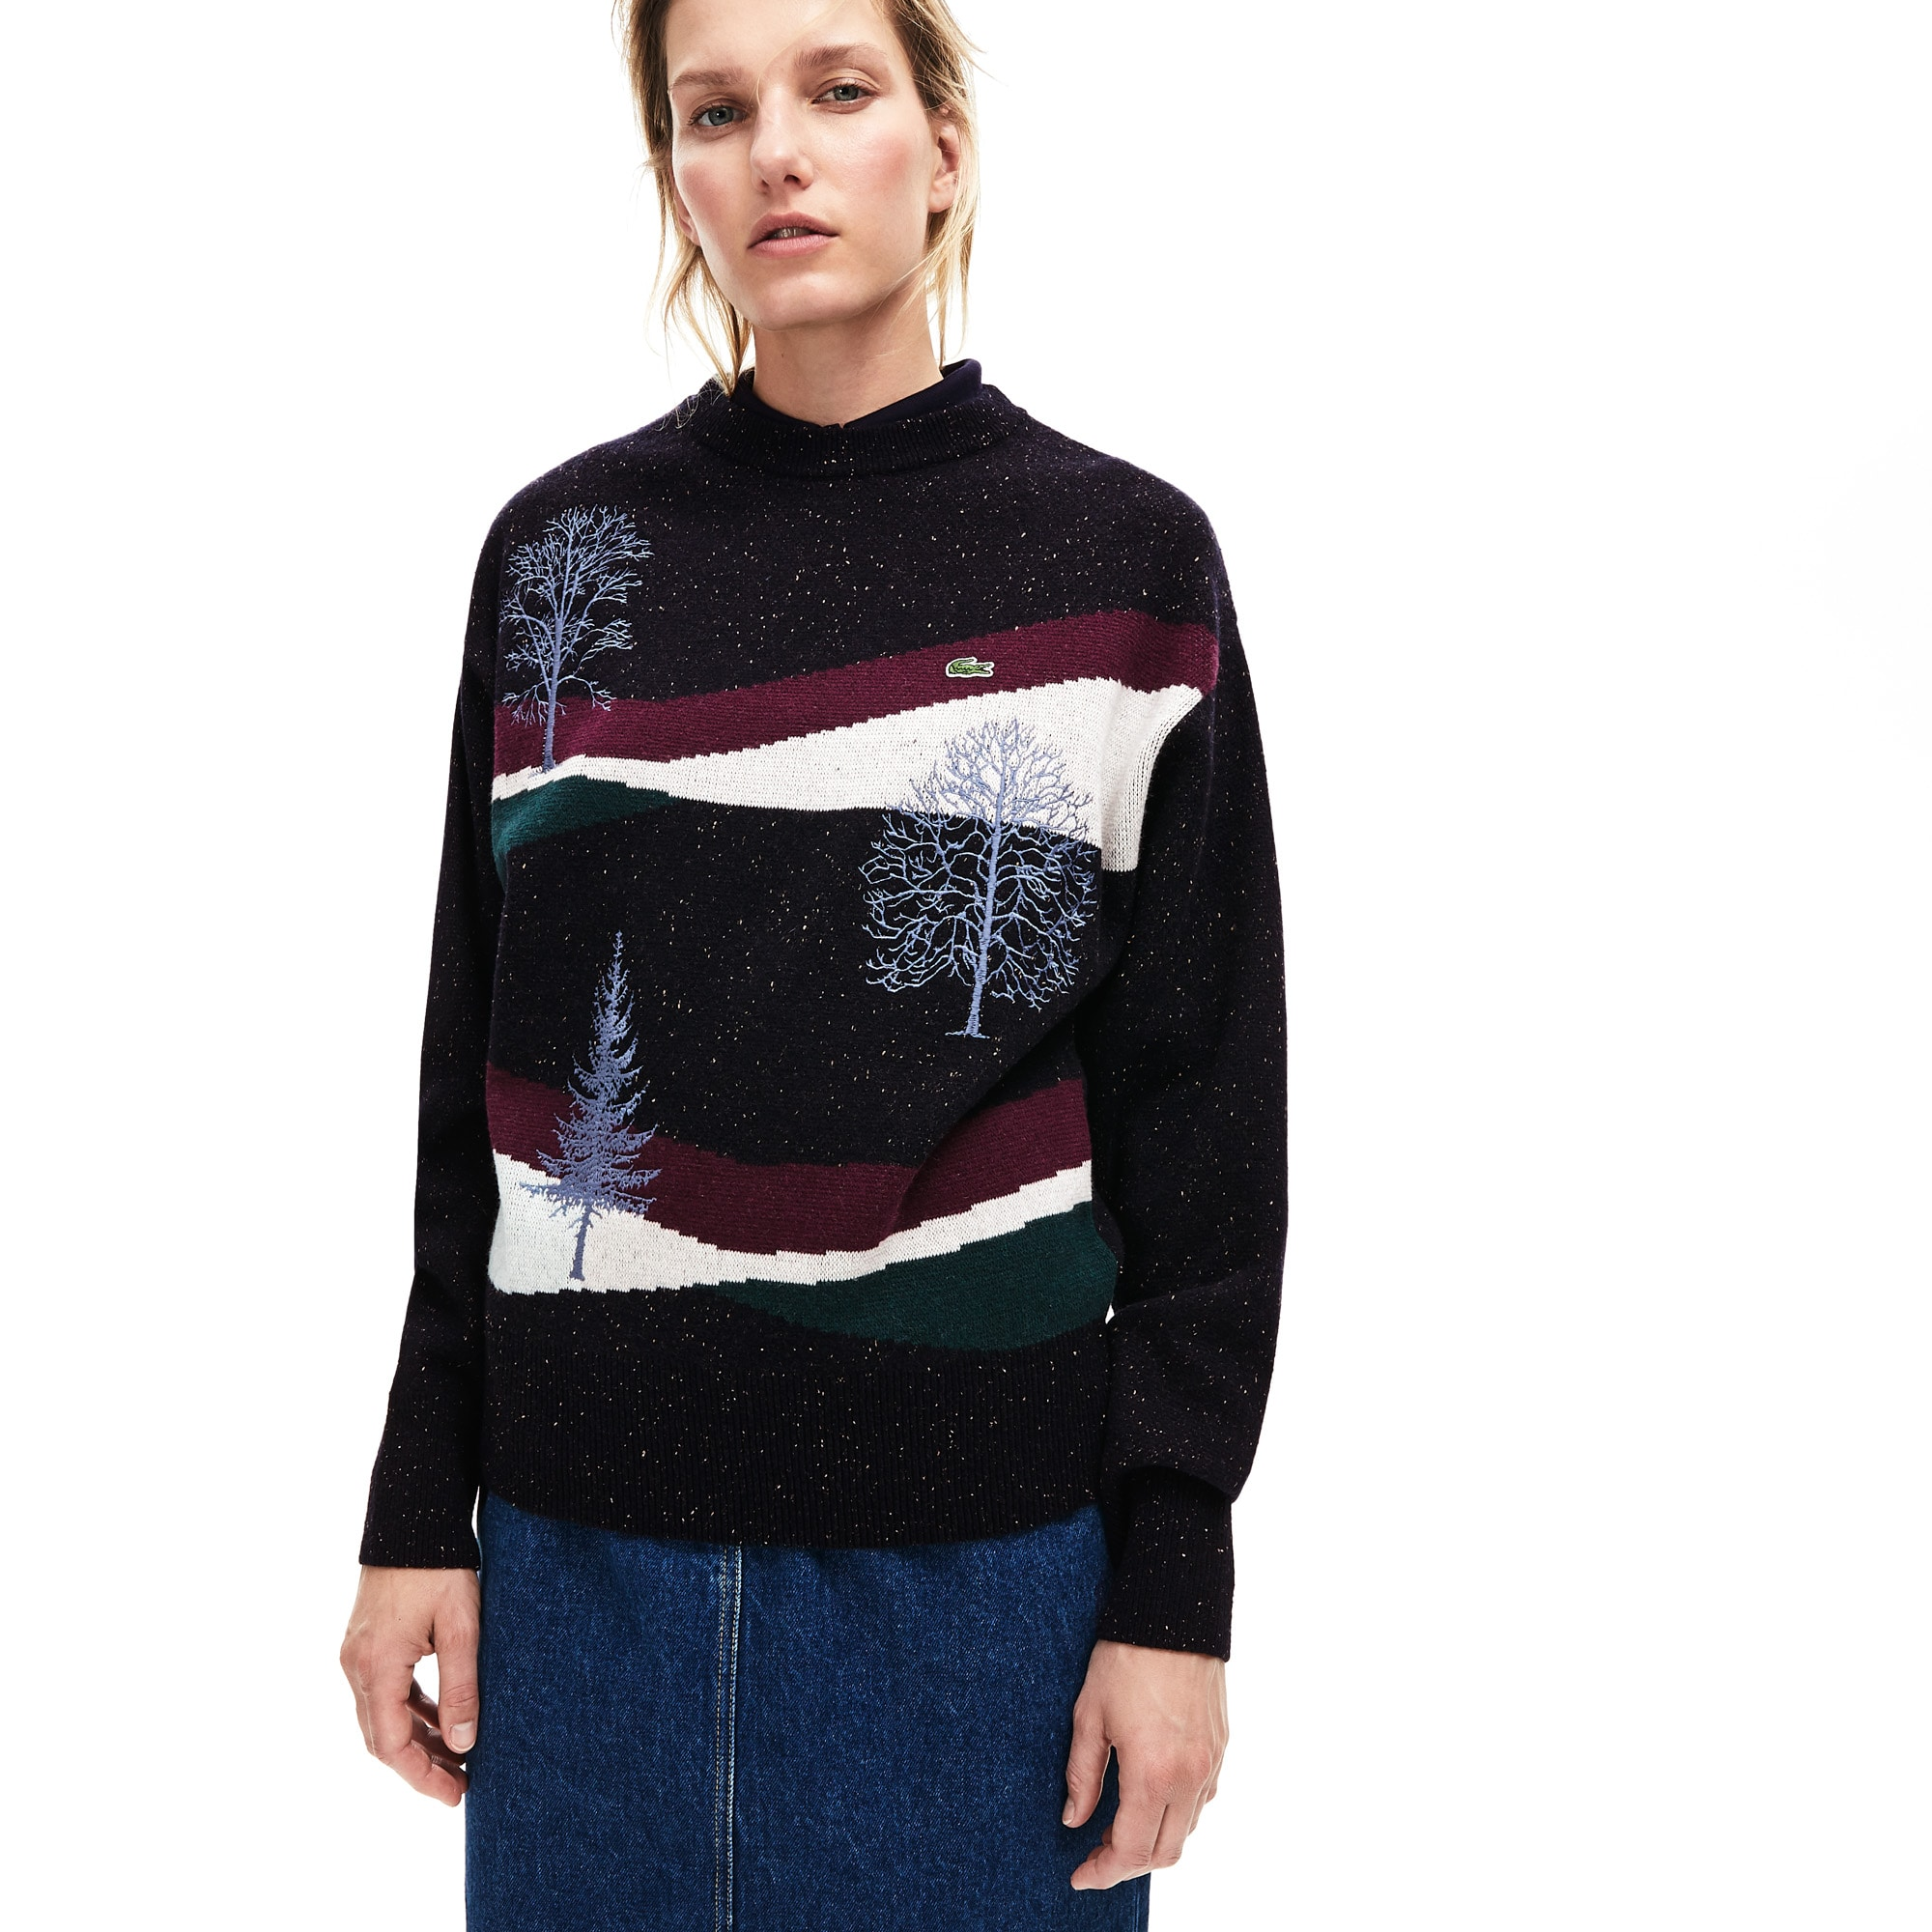 Lacoste Lingerie Women's Winter Design Cotton And Wool Blend Jacquard Sweater